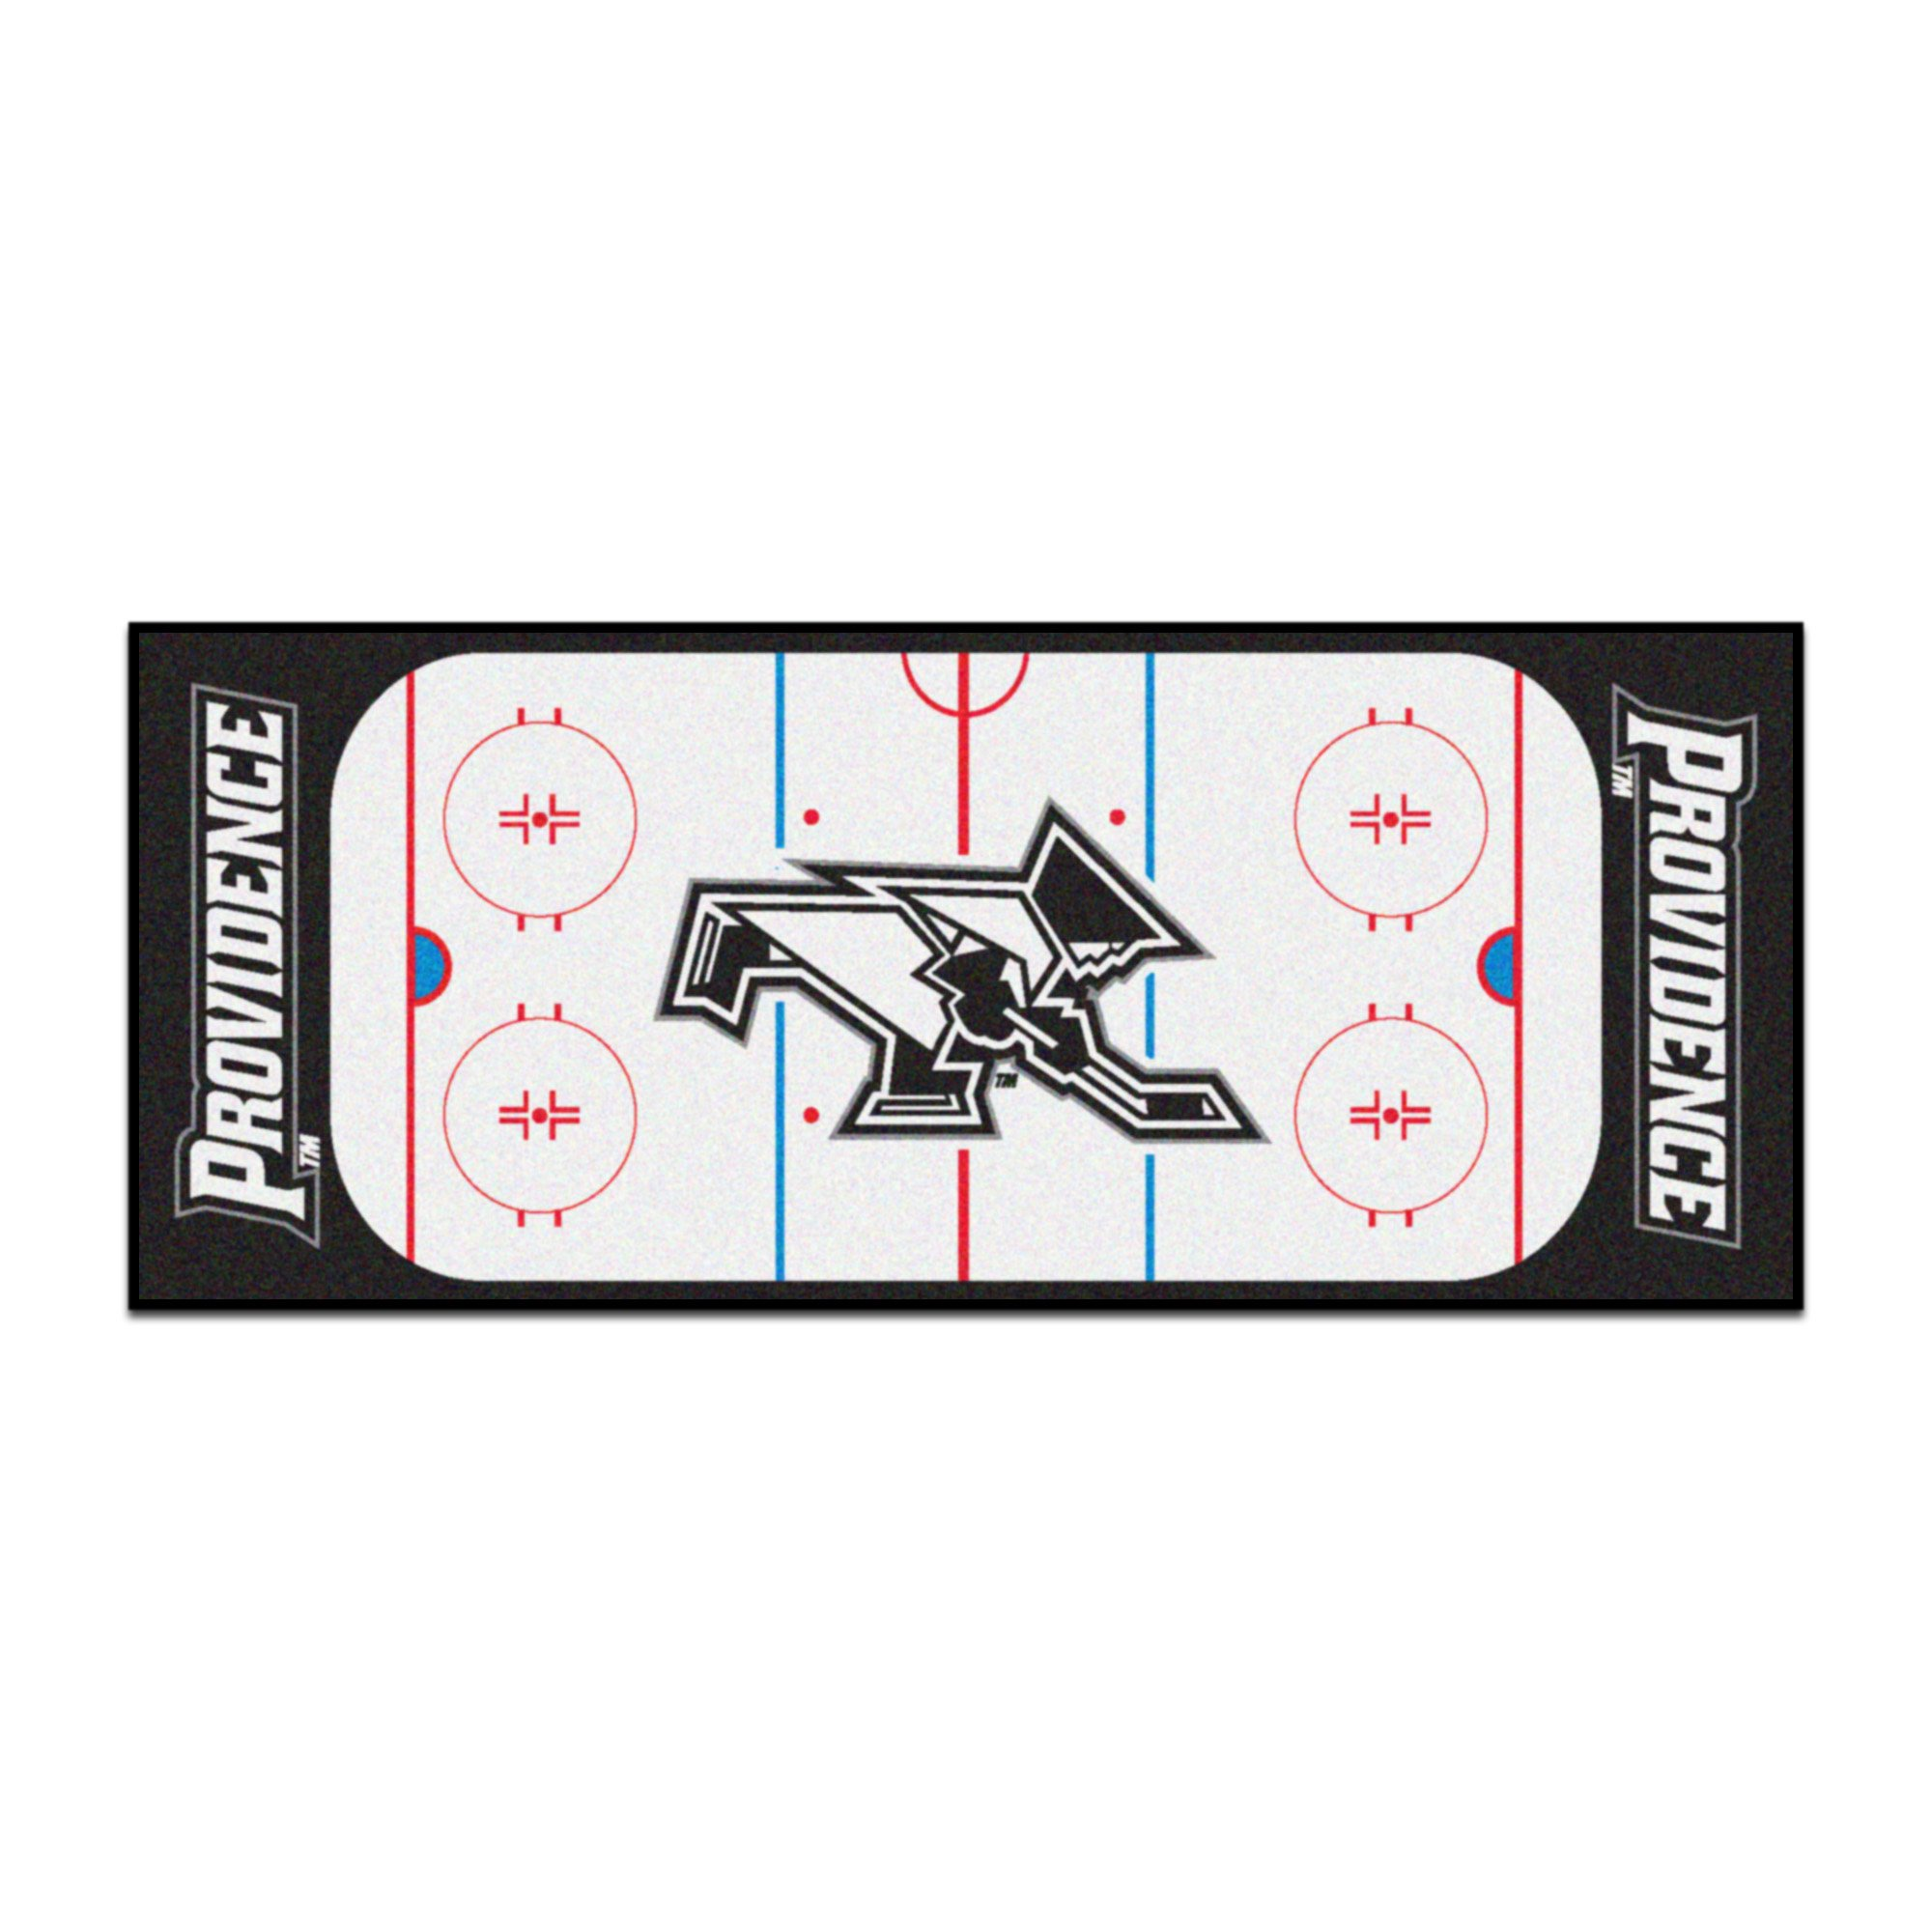 NCAA Providence College Friars Rink Non-Skid Mat Area Rug Runner